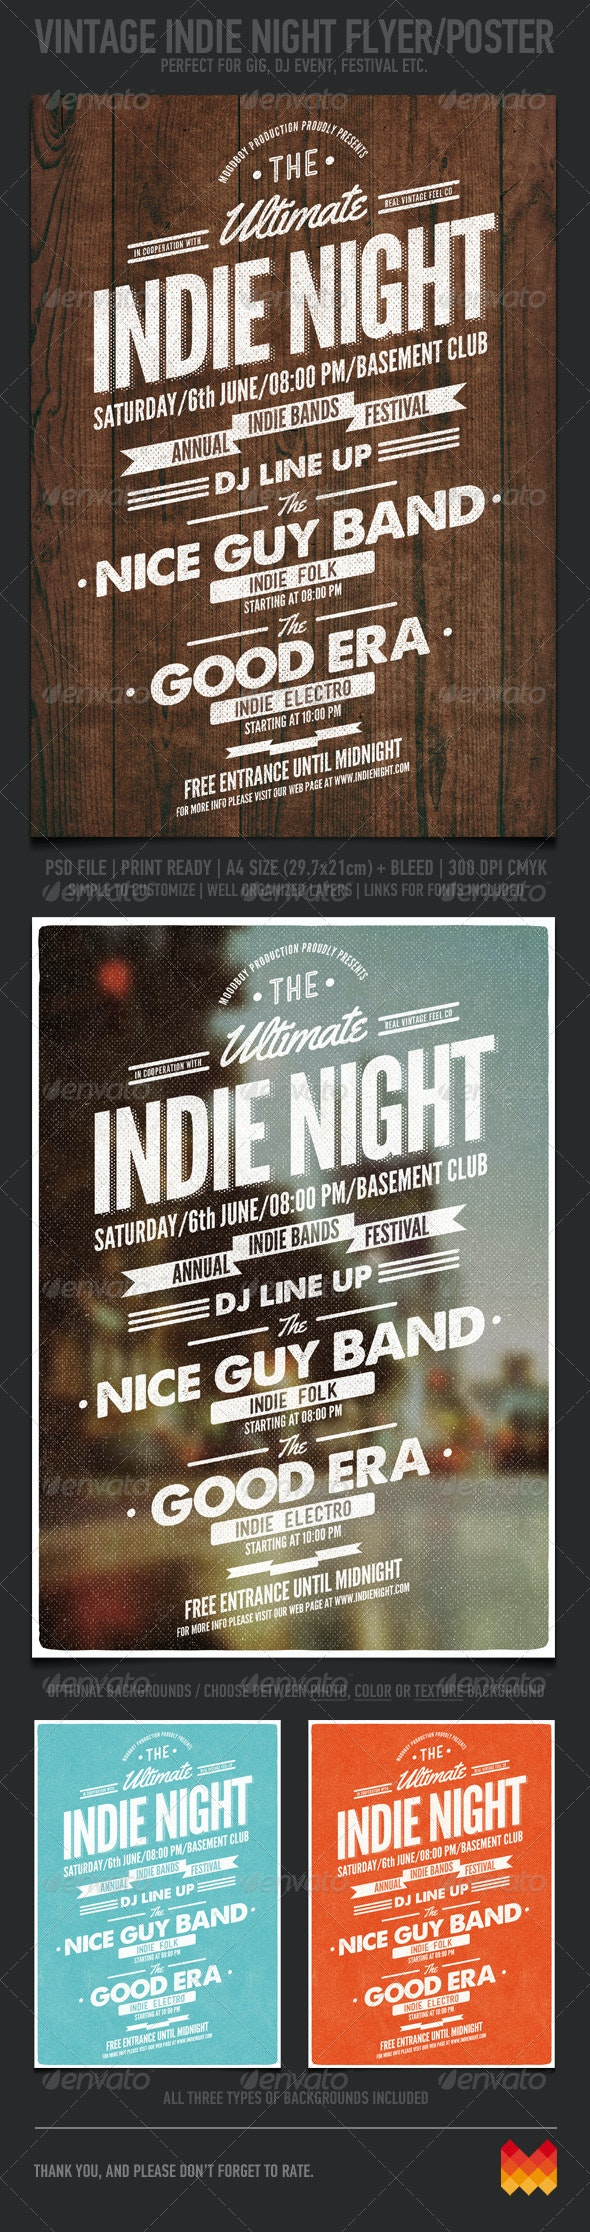 Vintage Indie Night Flyer/Poster - Events Flyers